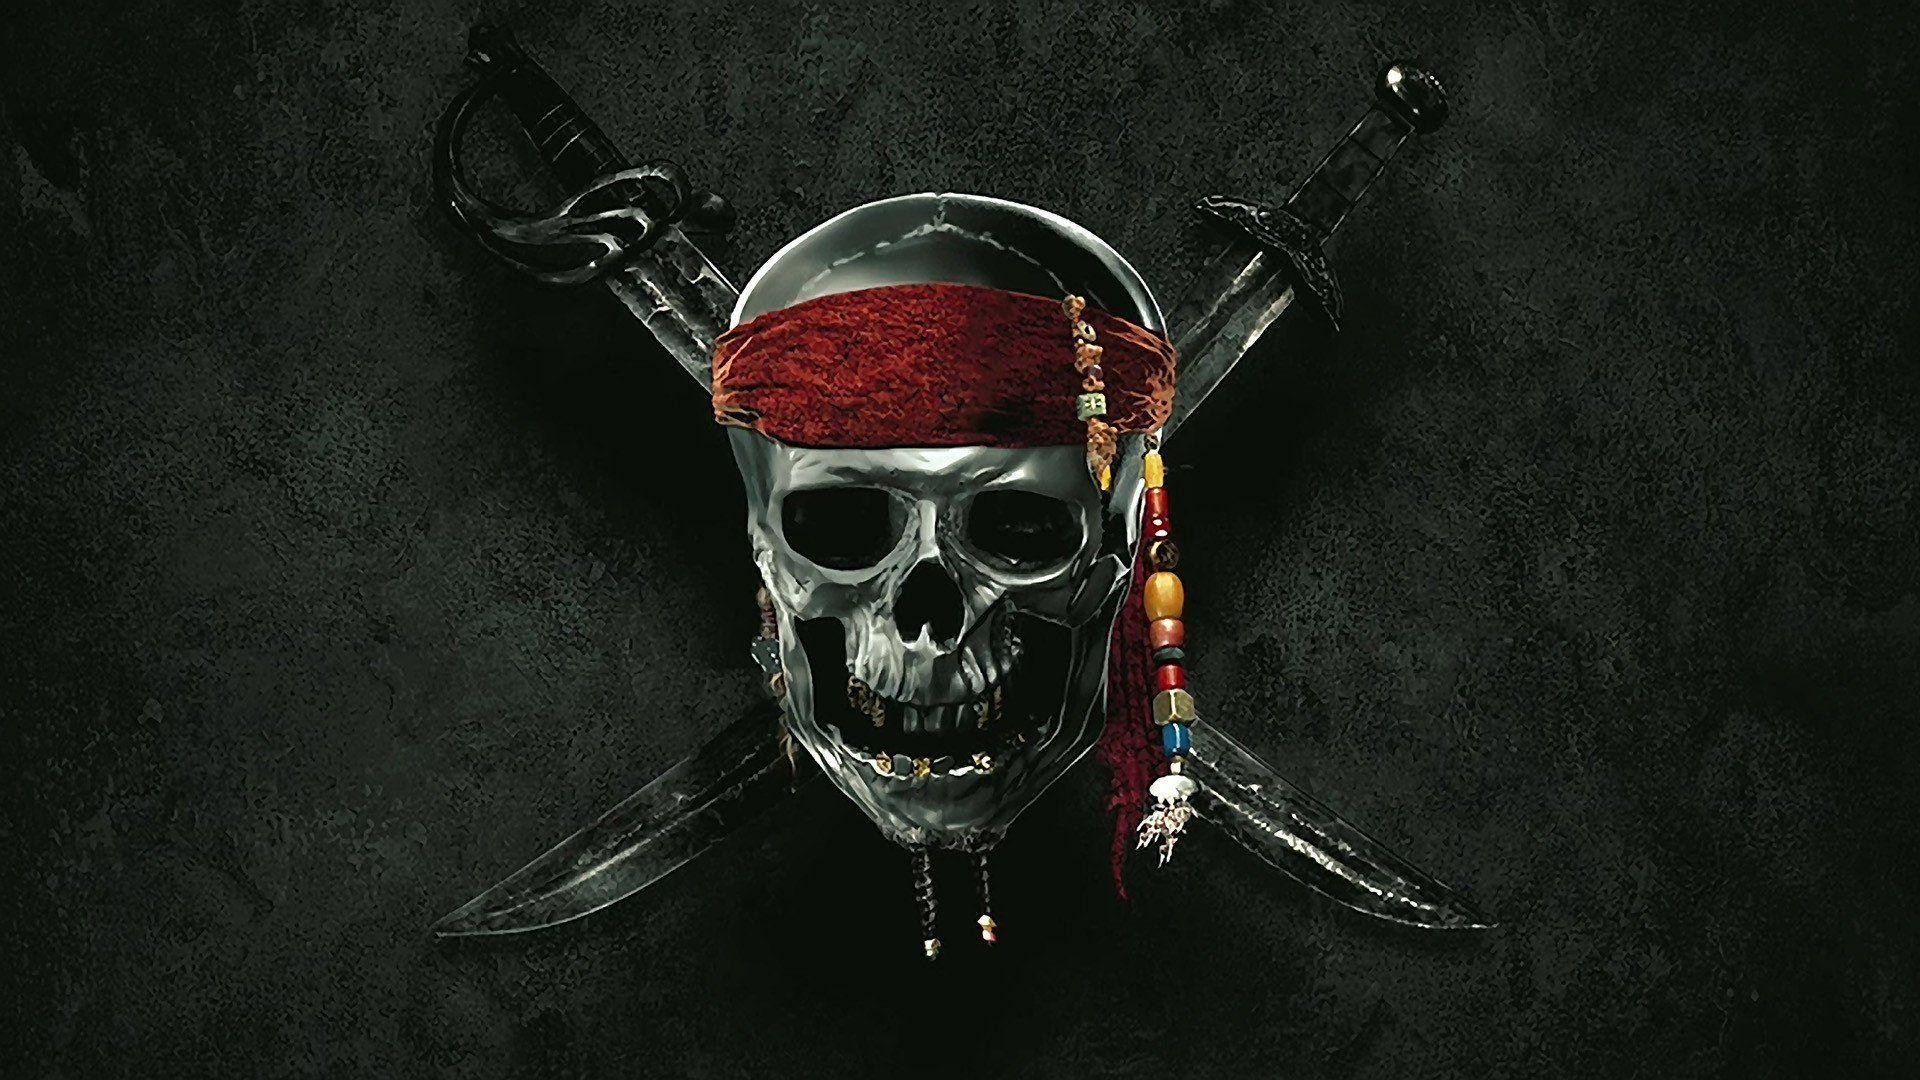 1920x1080 Pirates Of The Caribbean Skull Wallpaper